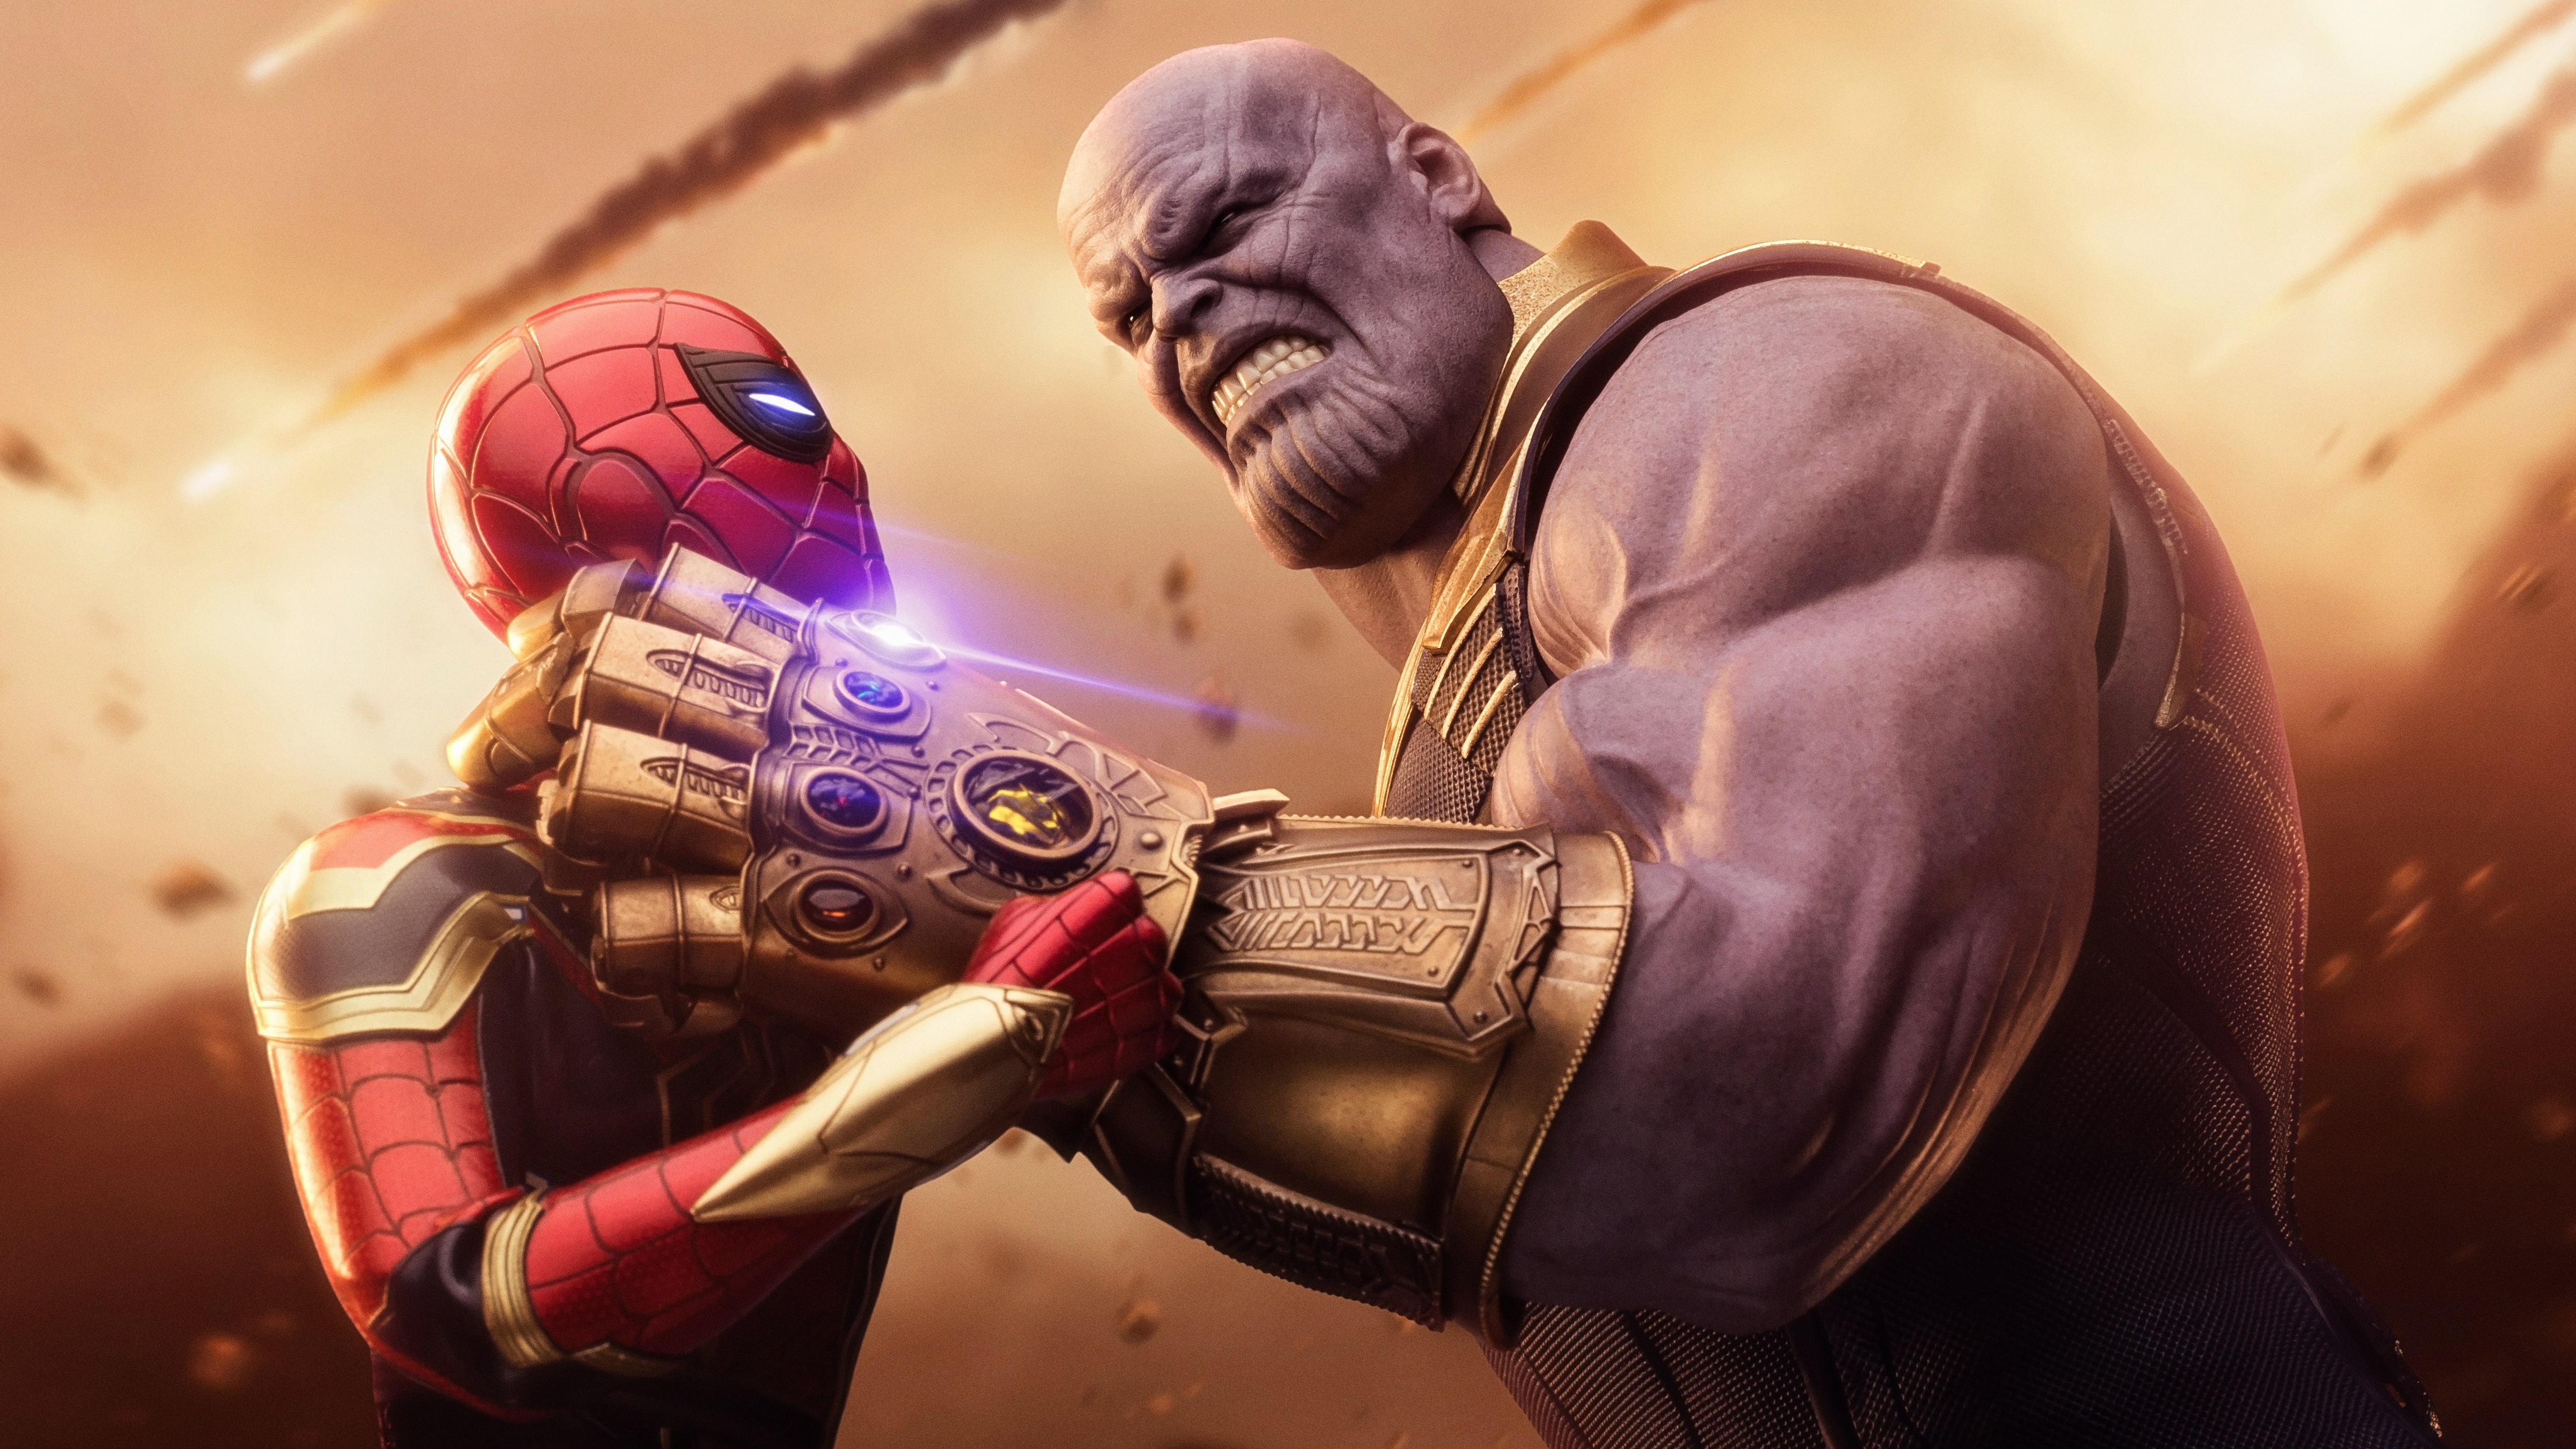 Spiderman thanos avengers infinity war hd superheroes 4k wallpapers images backgrounds - Infinity war hd download ...